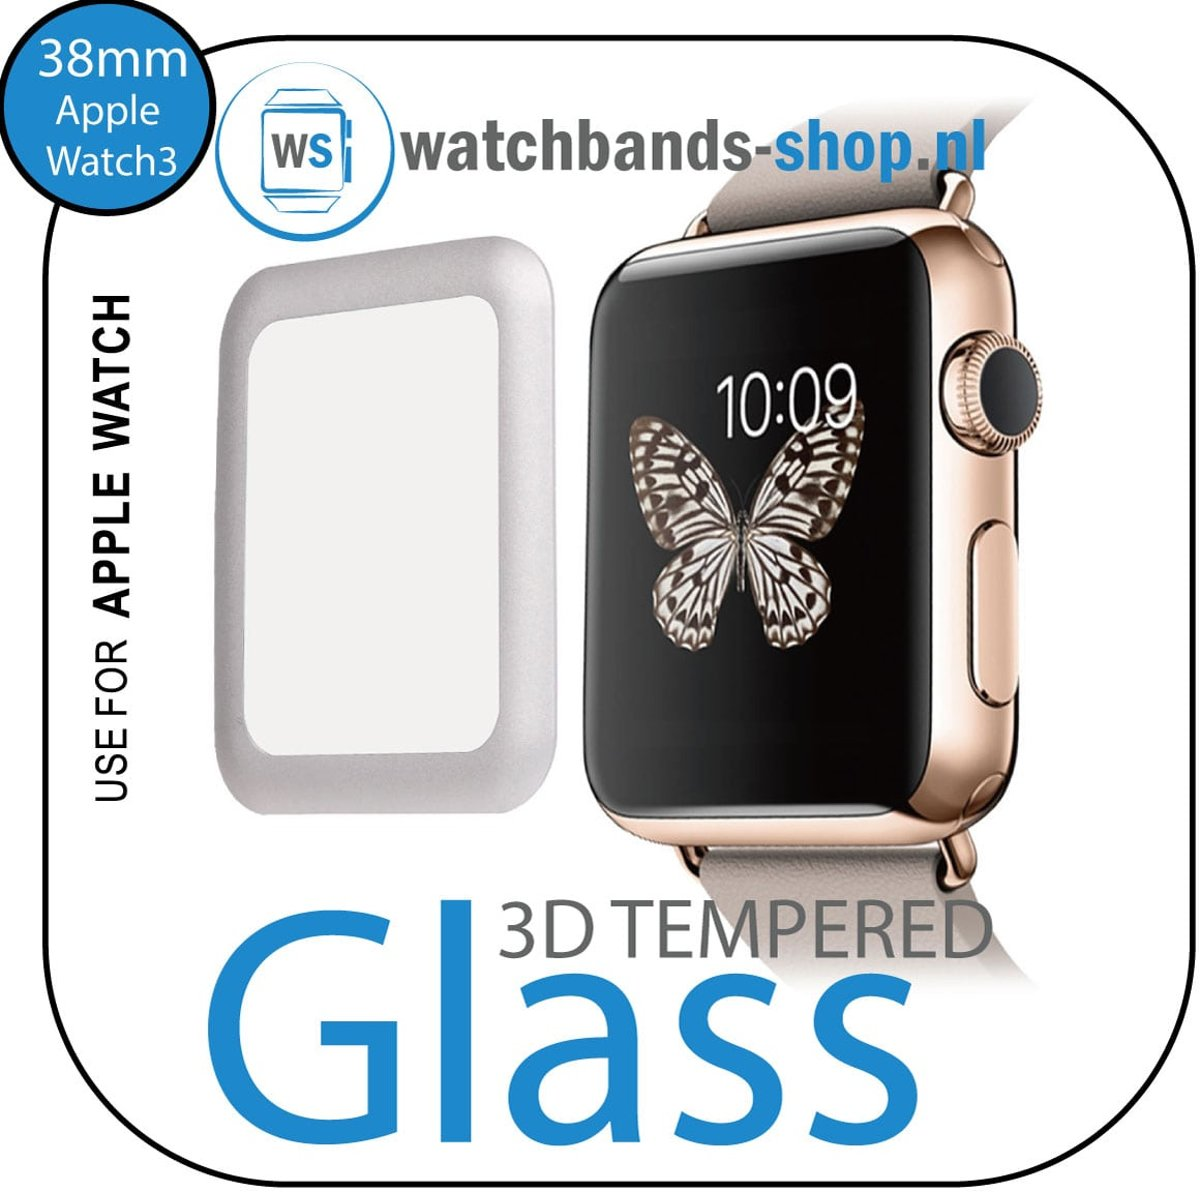 Watchbands-shop.nl 38mm full Cover 3D Tempered Glass Screen Protector For Apple watch / iWatch 3 silver edge kopen